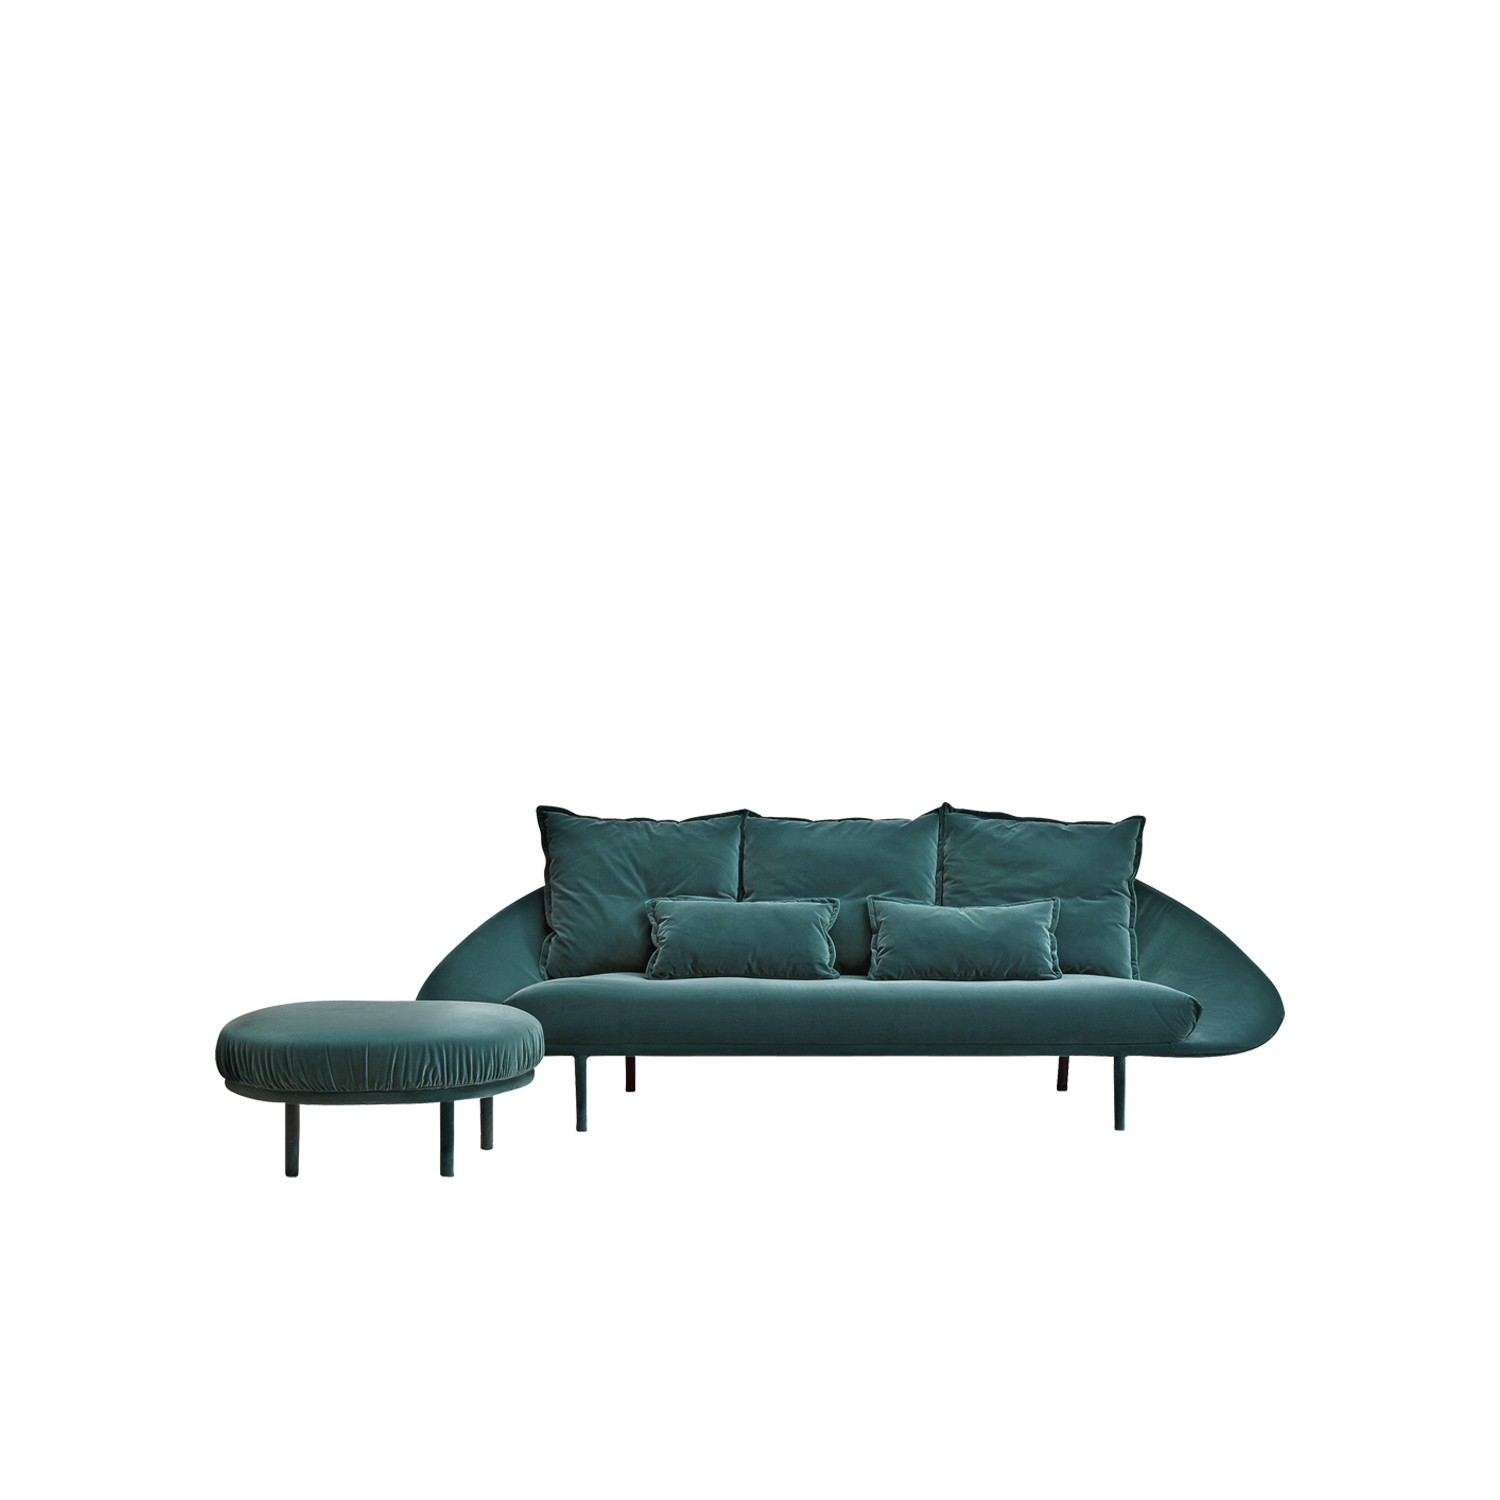 Lem Sofa - Lem is a soft and sinuous sofa with a completely upholstered structure that ascends with sweet, little feet. The soft cushions of the seat and the back lean on the fabric shell, ensuring maximum comfort. The Lem series includes five variants, two or three-seater sofa, sectional sofa, armchair, and ottoman.